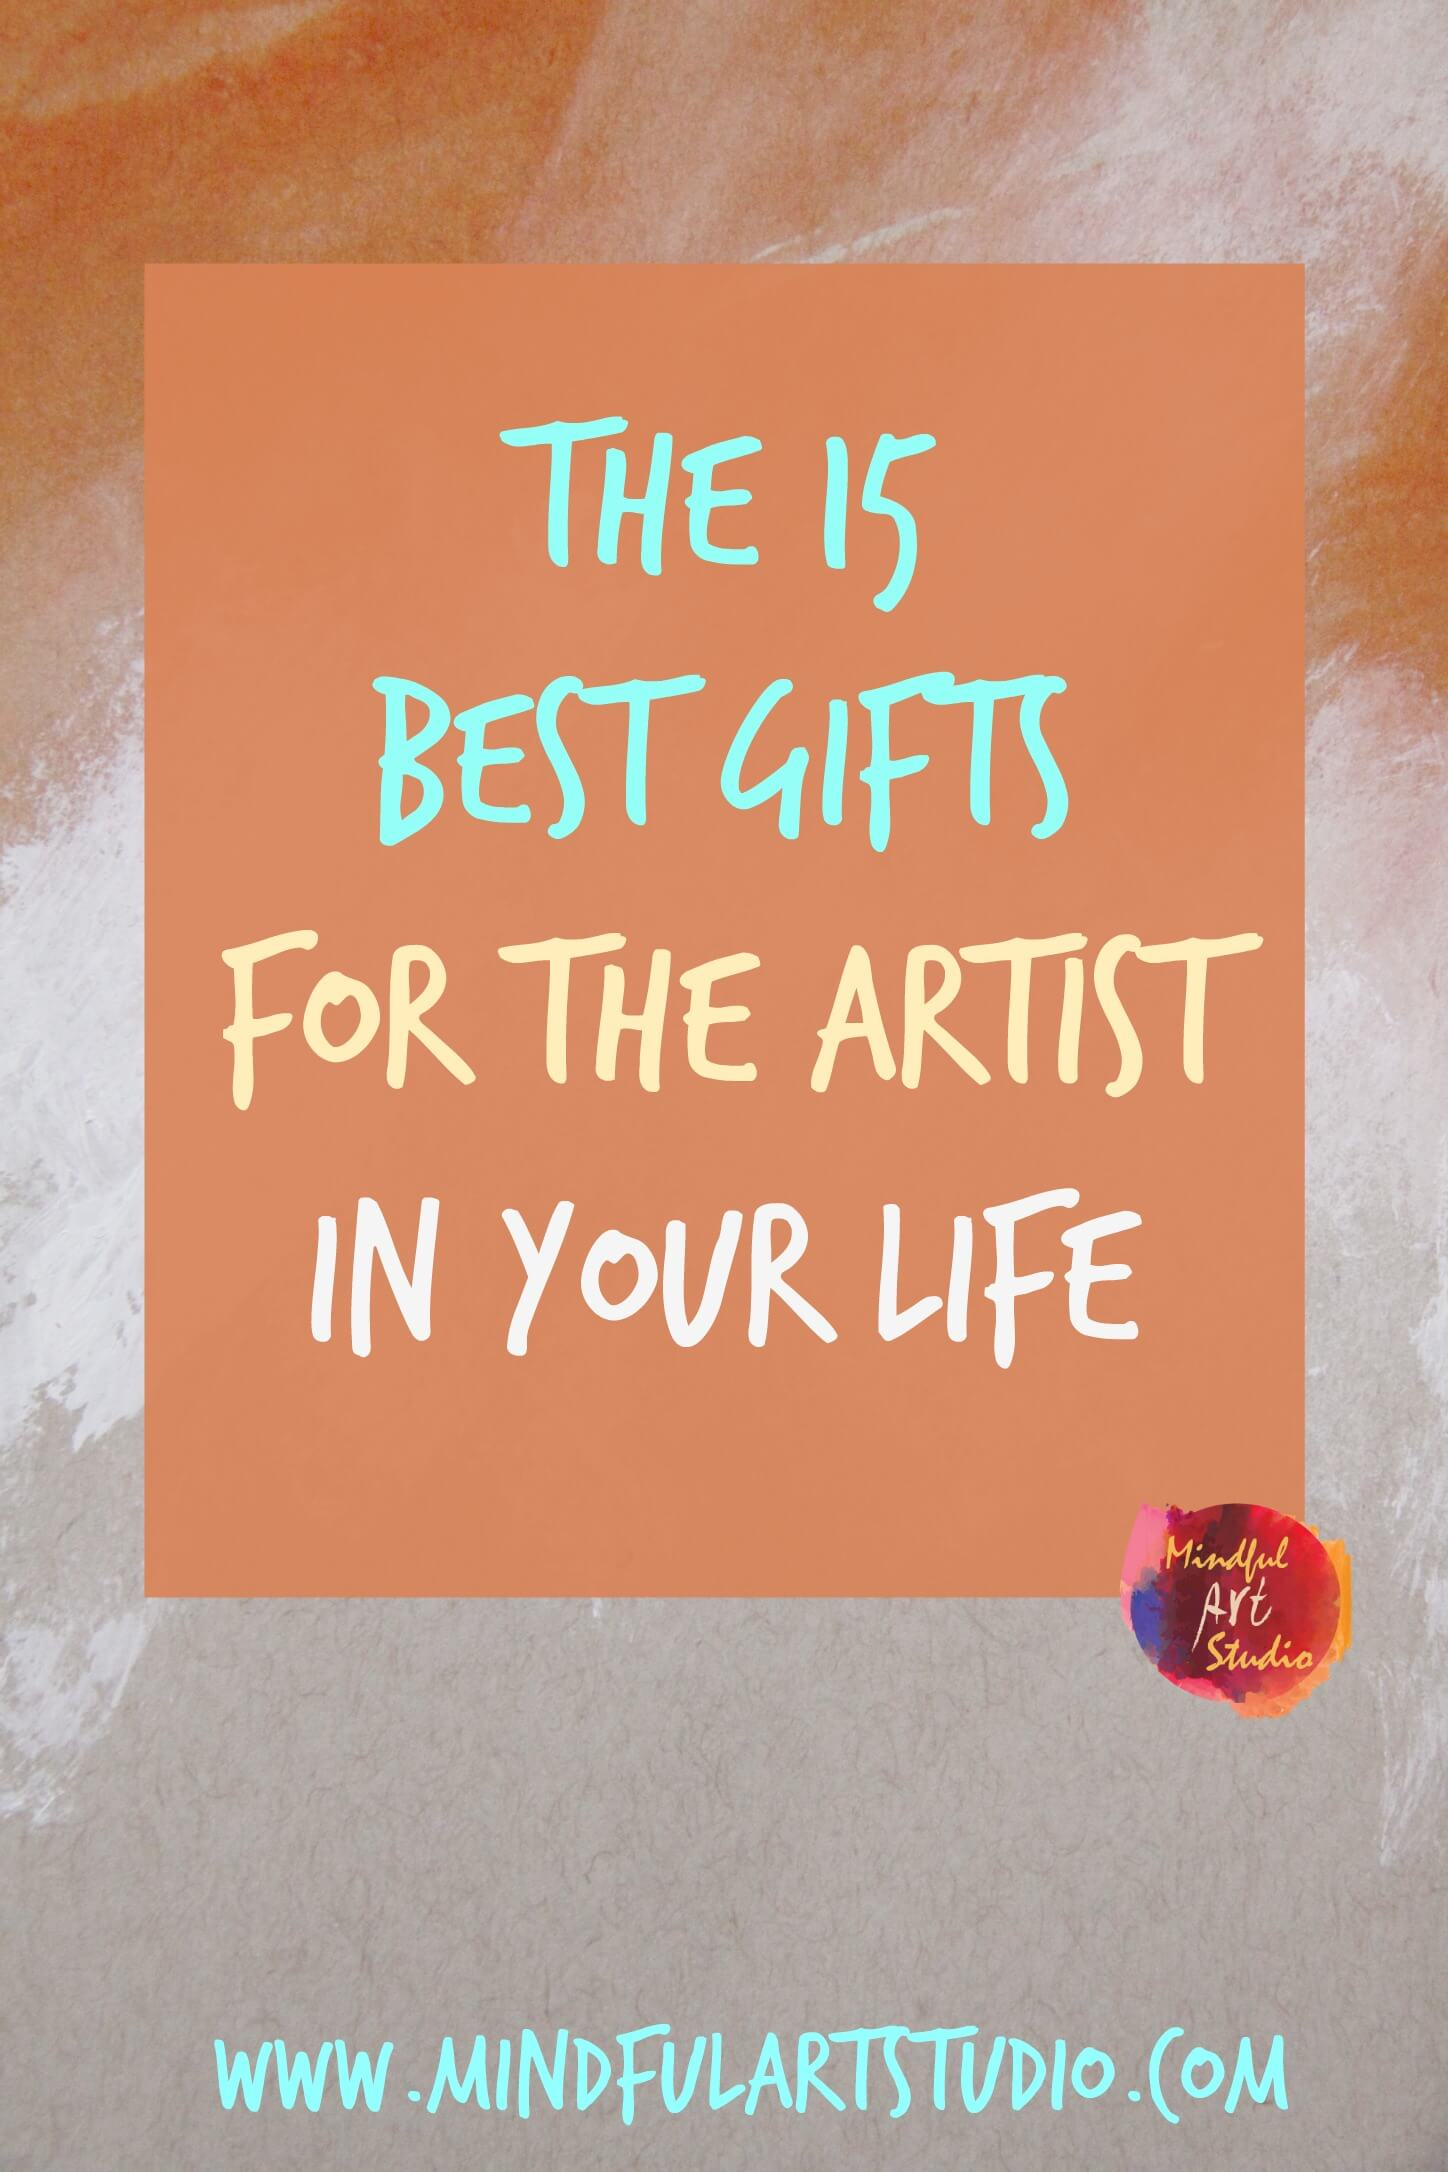 the 15 best gifts for the artist in your life